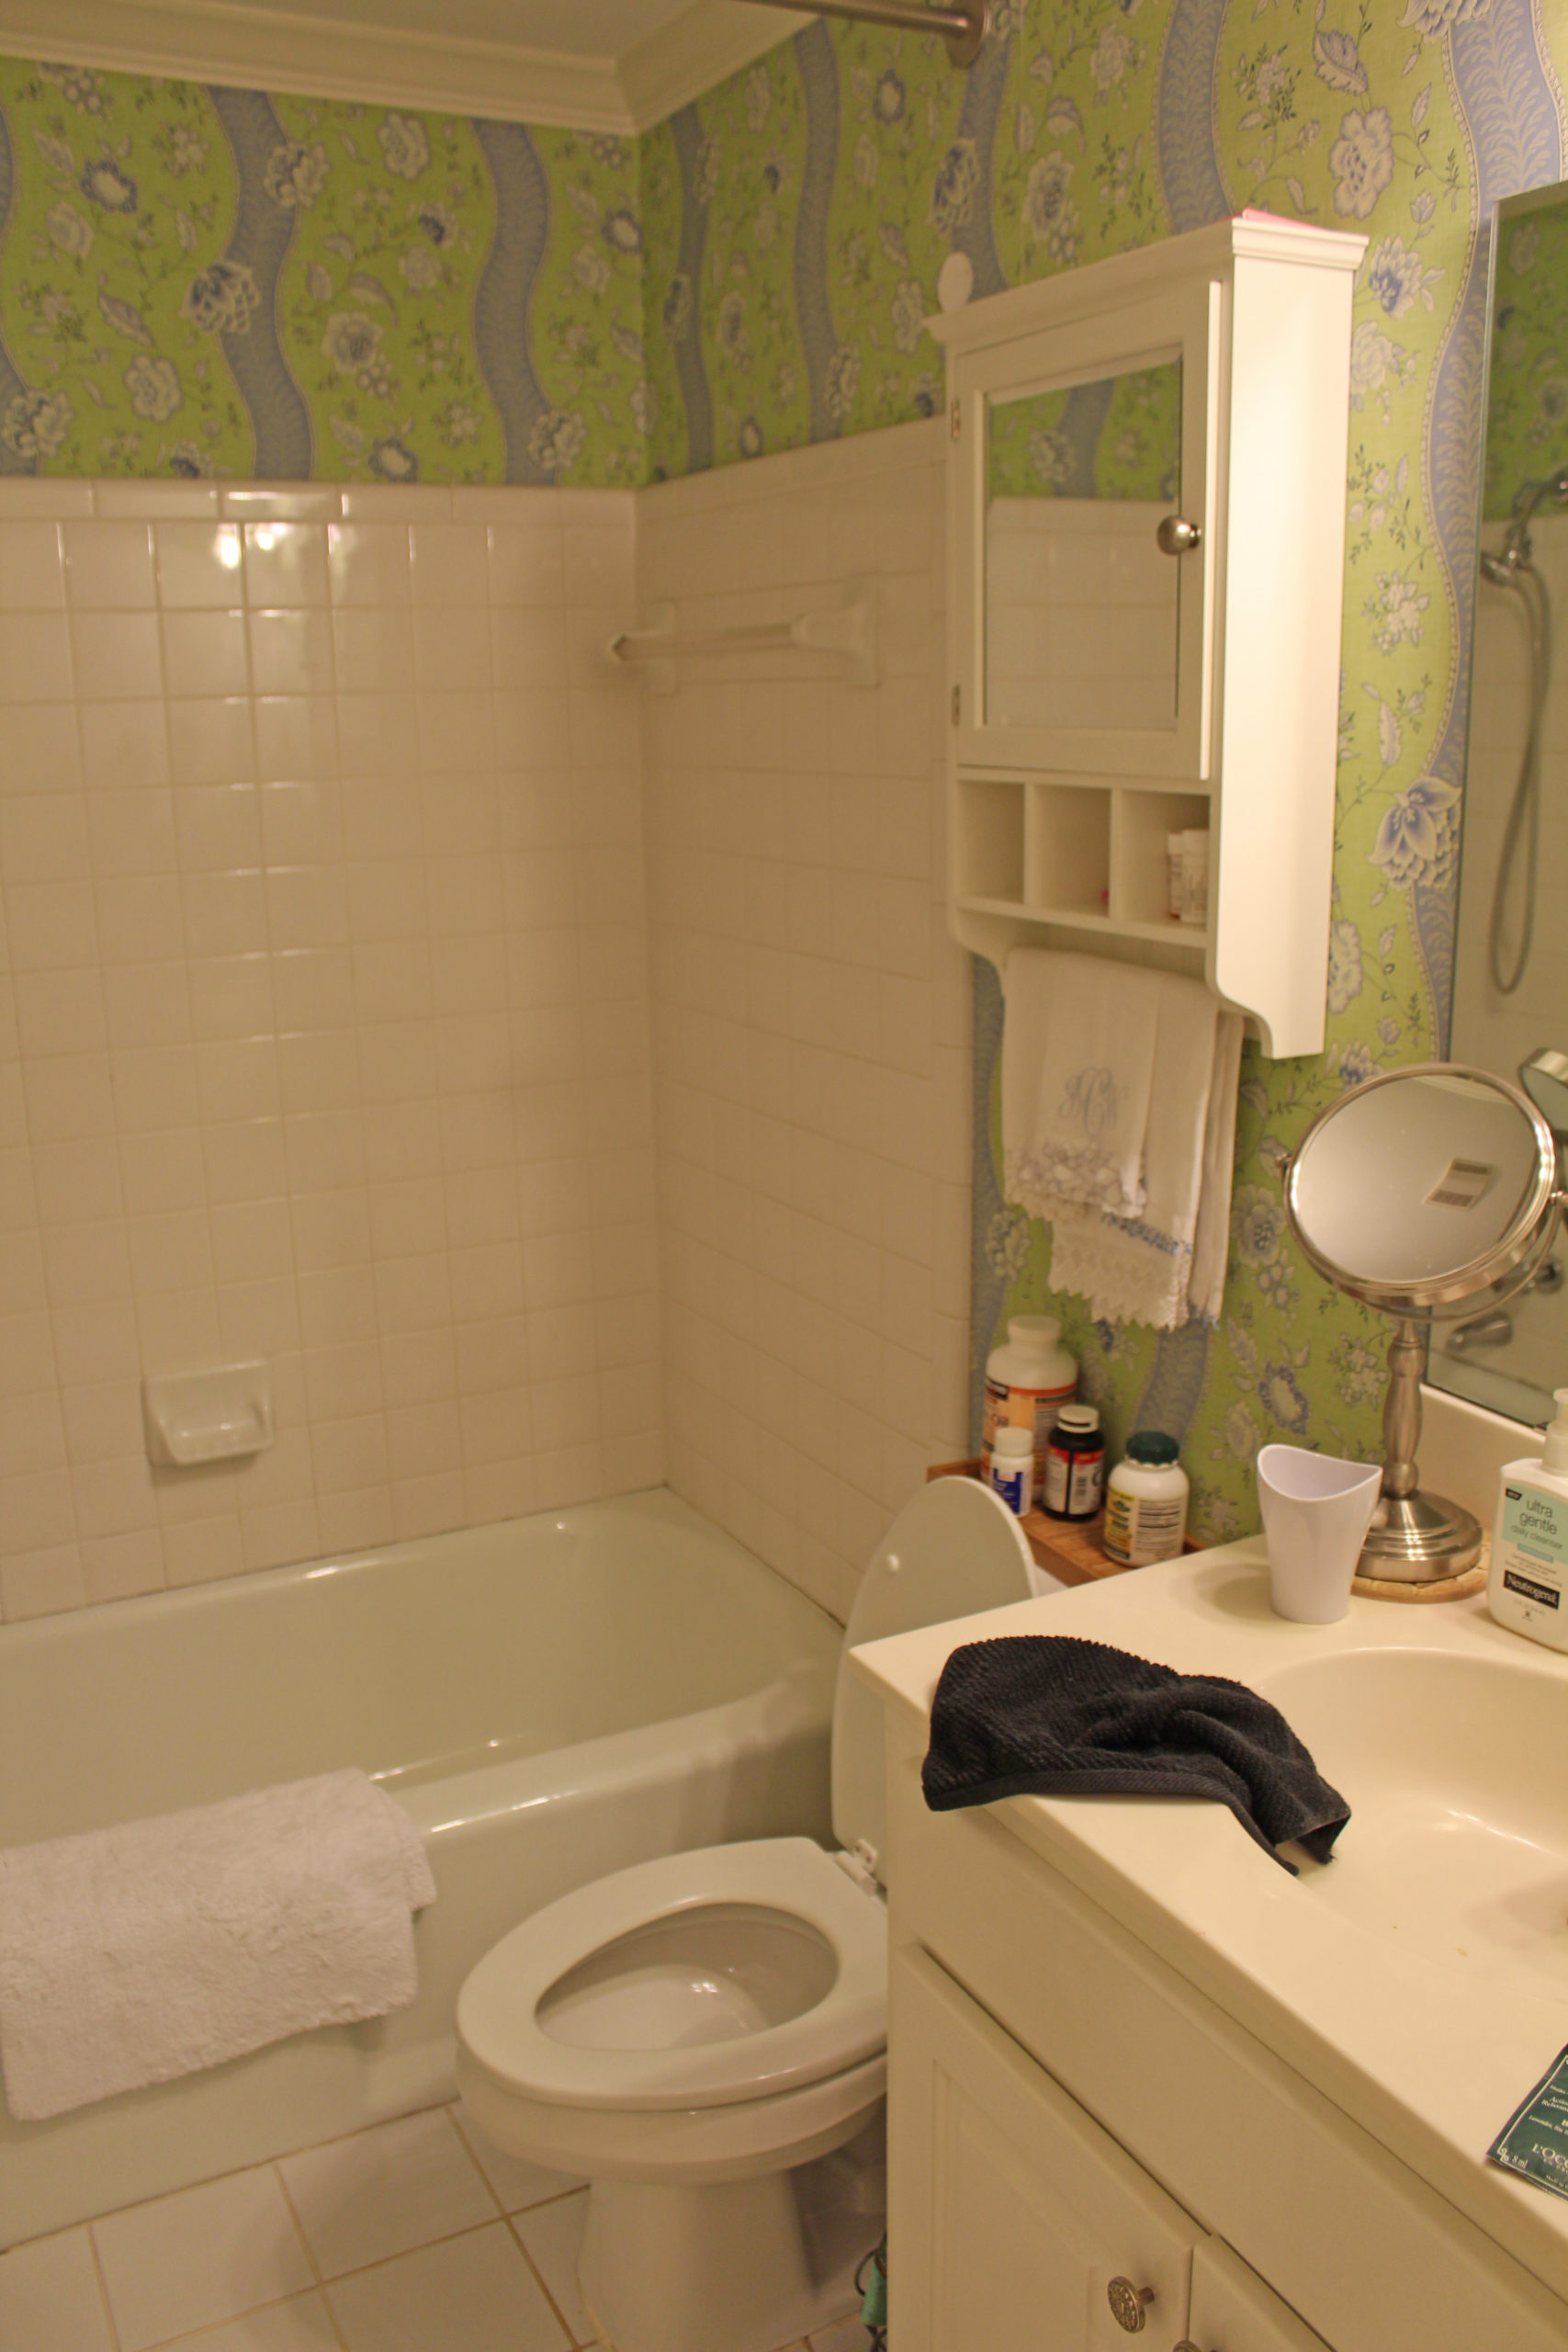 bathroom-remodeling-work-TAG-Builders-212-MG-Remodel-ba-5-scaled